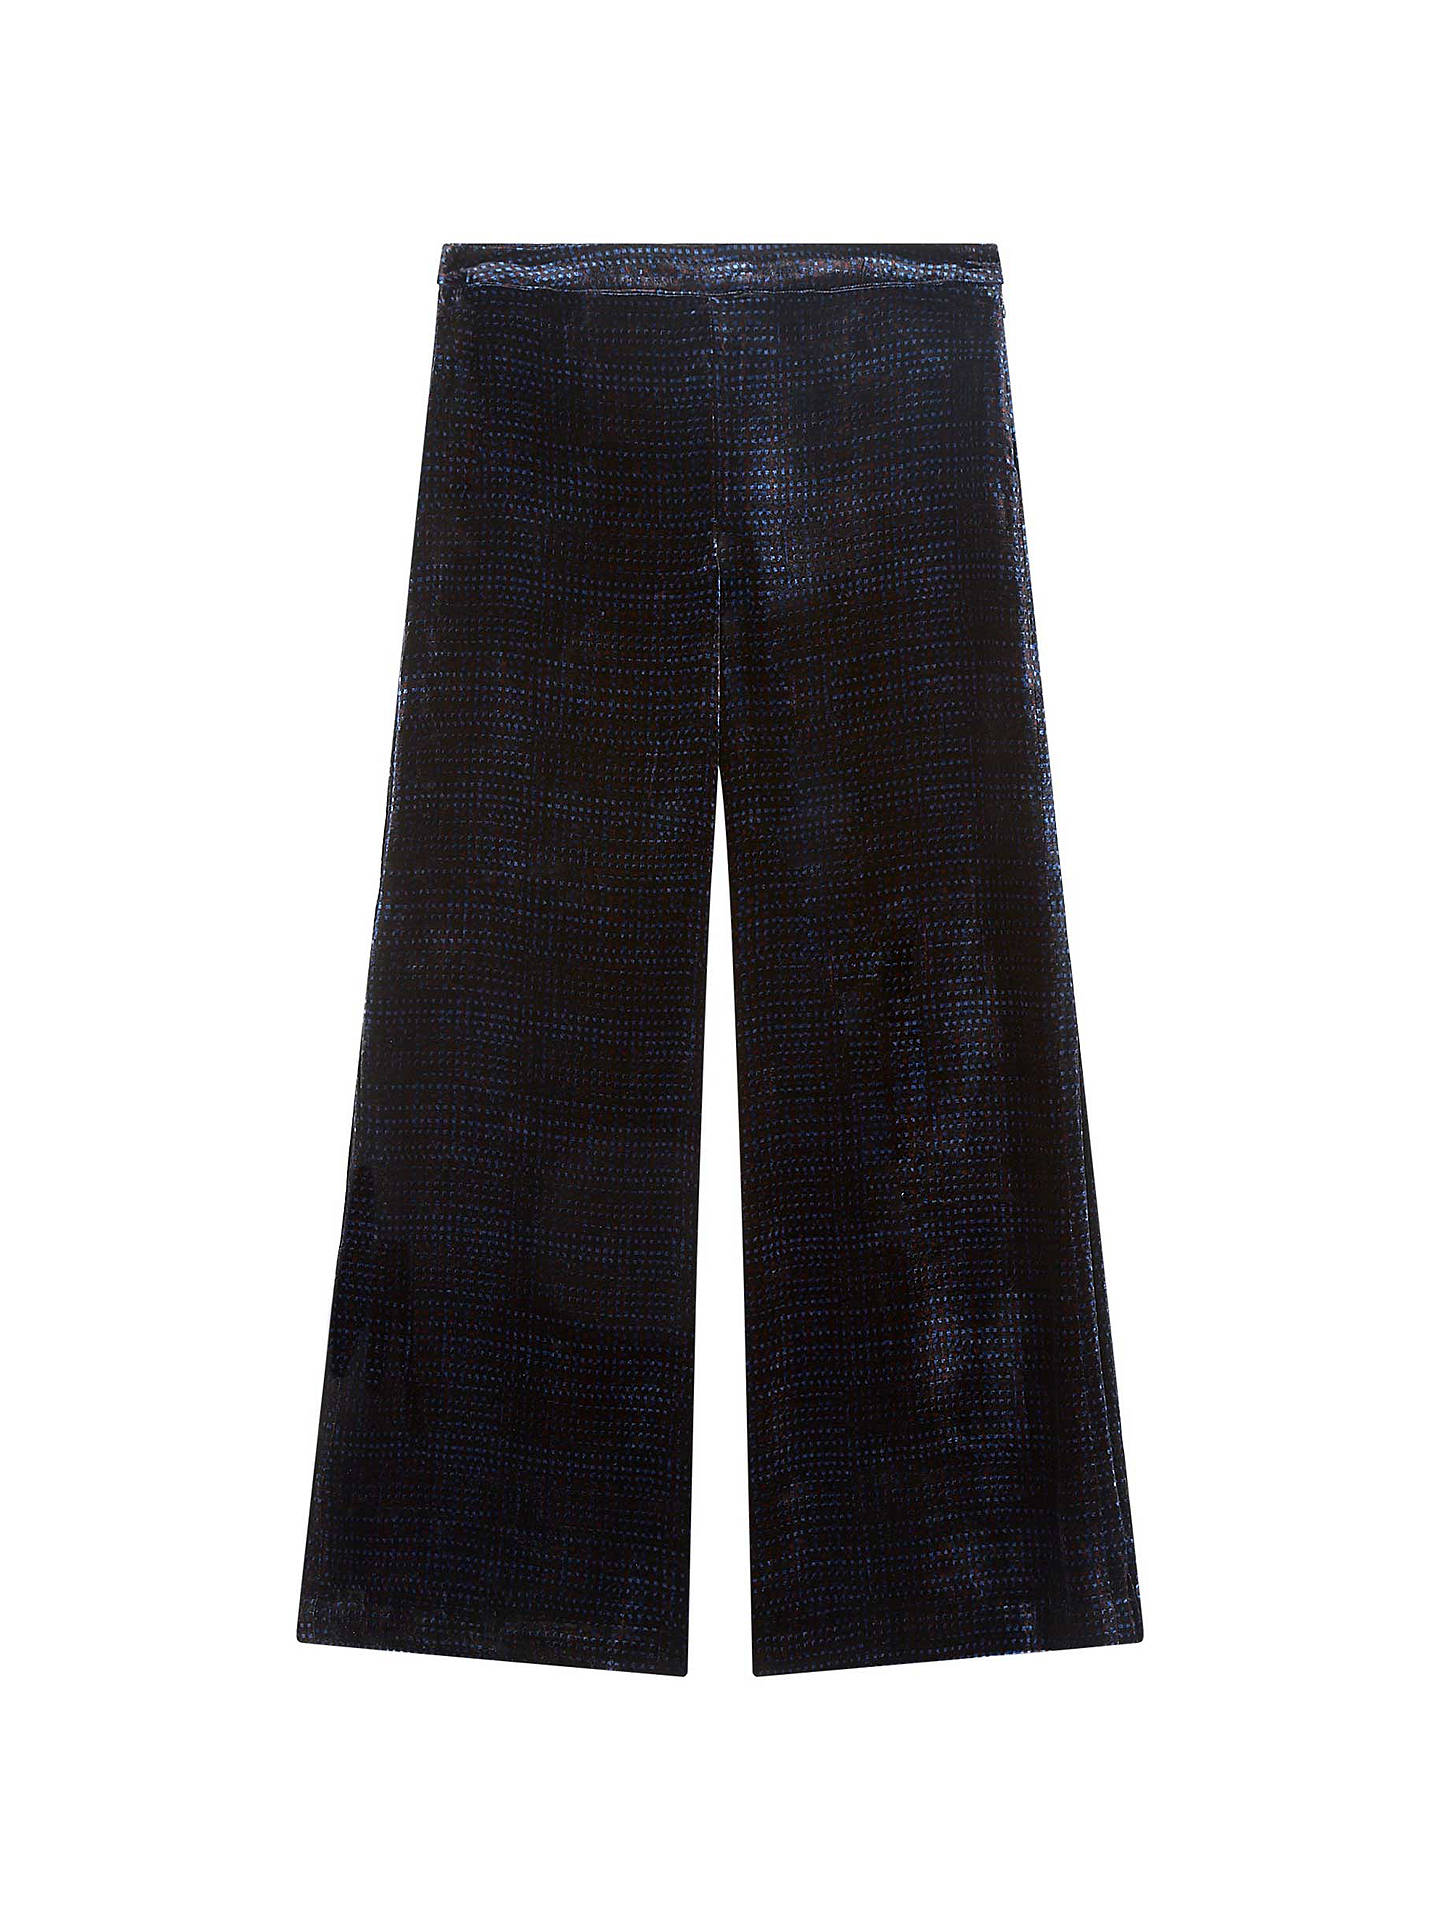 BuyBrora Printed Silk Velvet Trousers, Nightshade, 6 Online at johnlewis.com